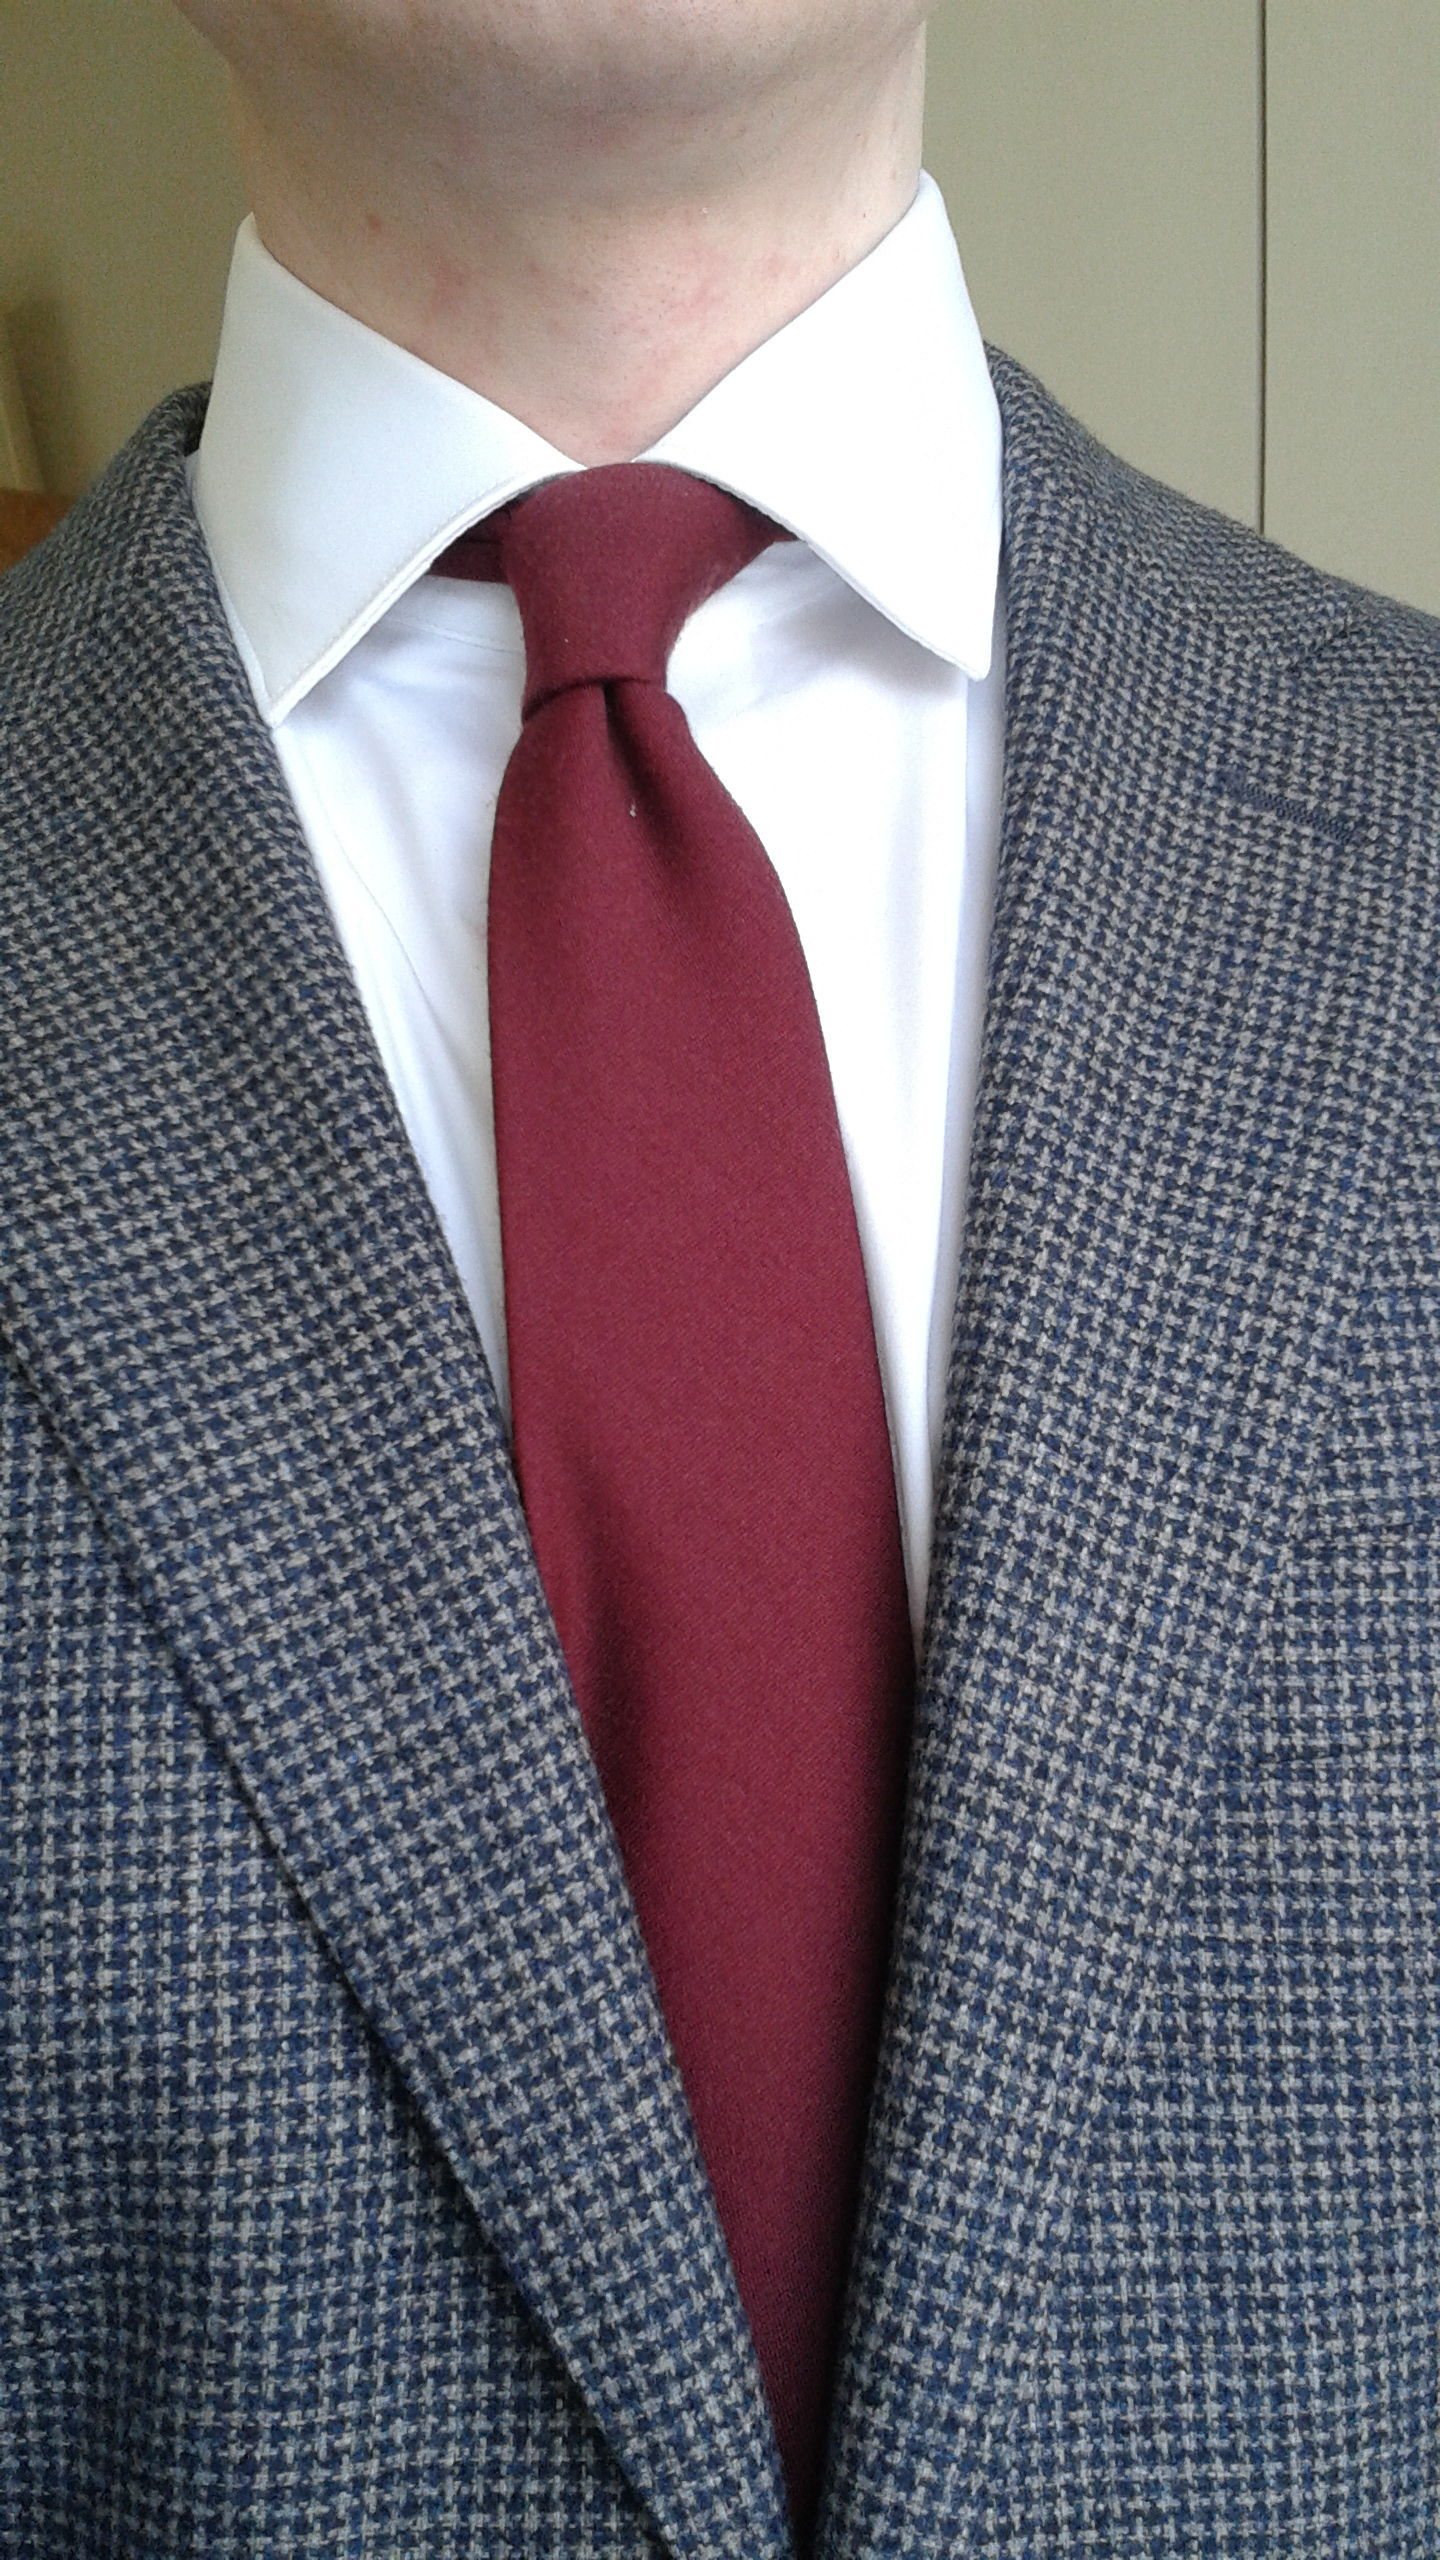 Good Makers For Basic Staple Ties Styleforum New Tie Knot Styles Diagrams Http Lenoeudpapillonblogspotcom 2012 I Think The Bars 70 30 Wool Silk Solid Are Particularly Nice Have This One In Burgundy